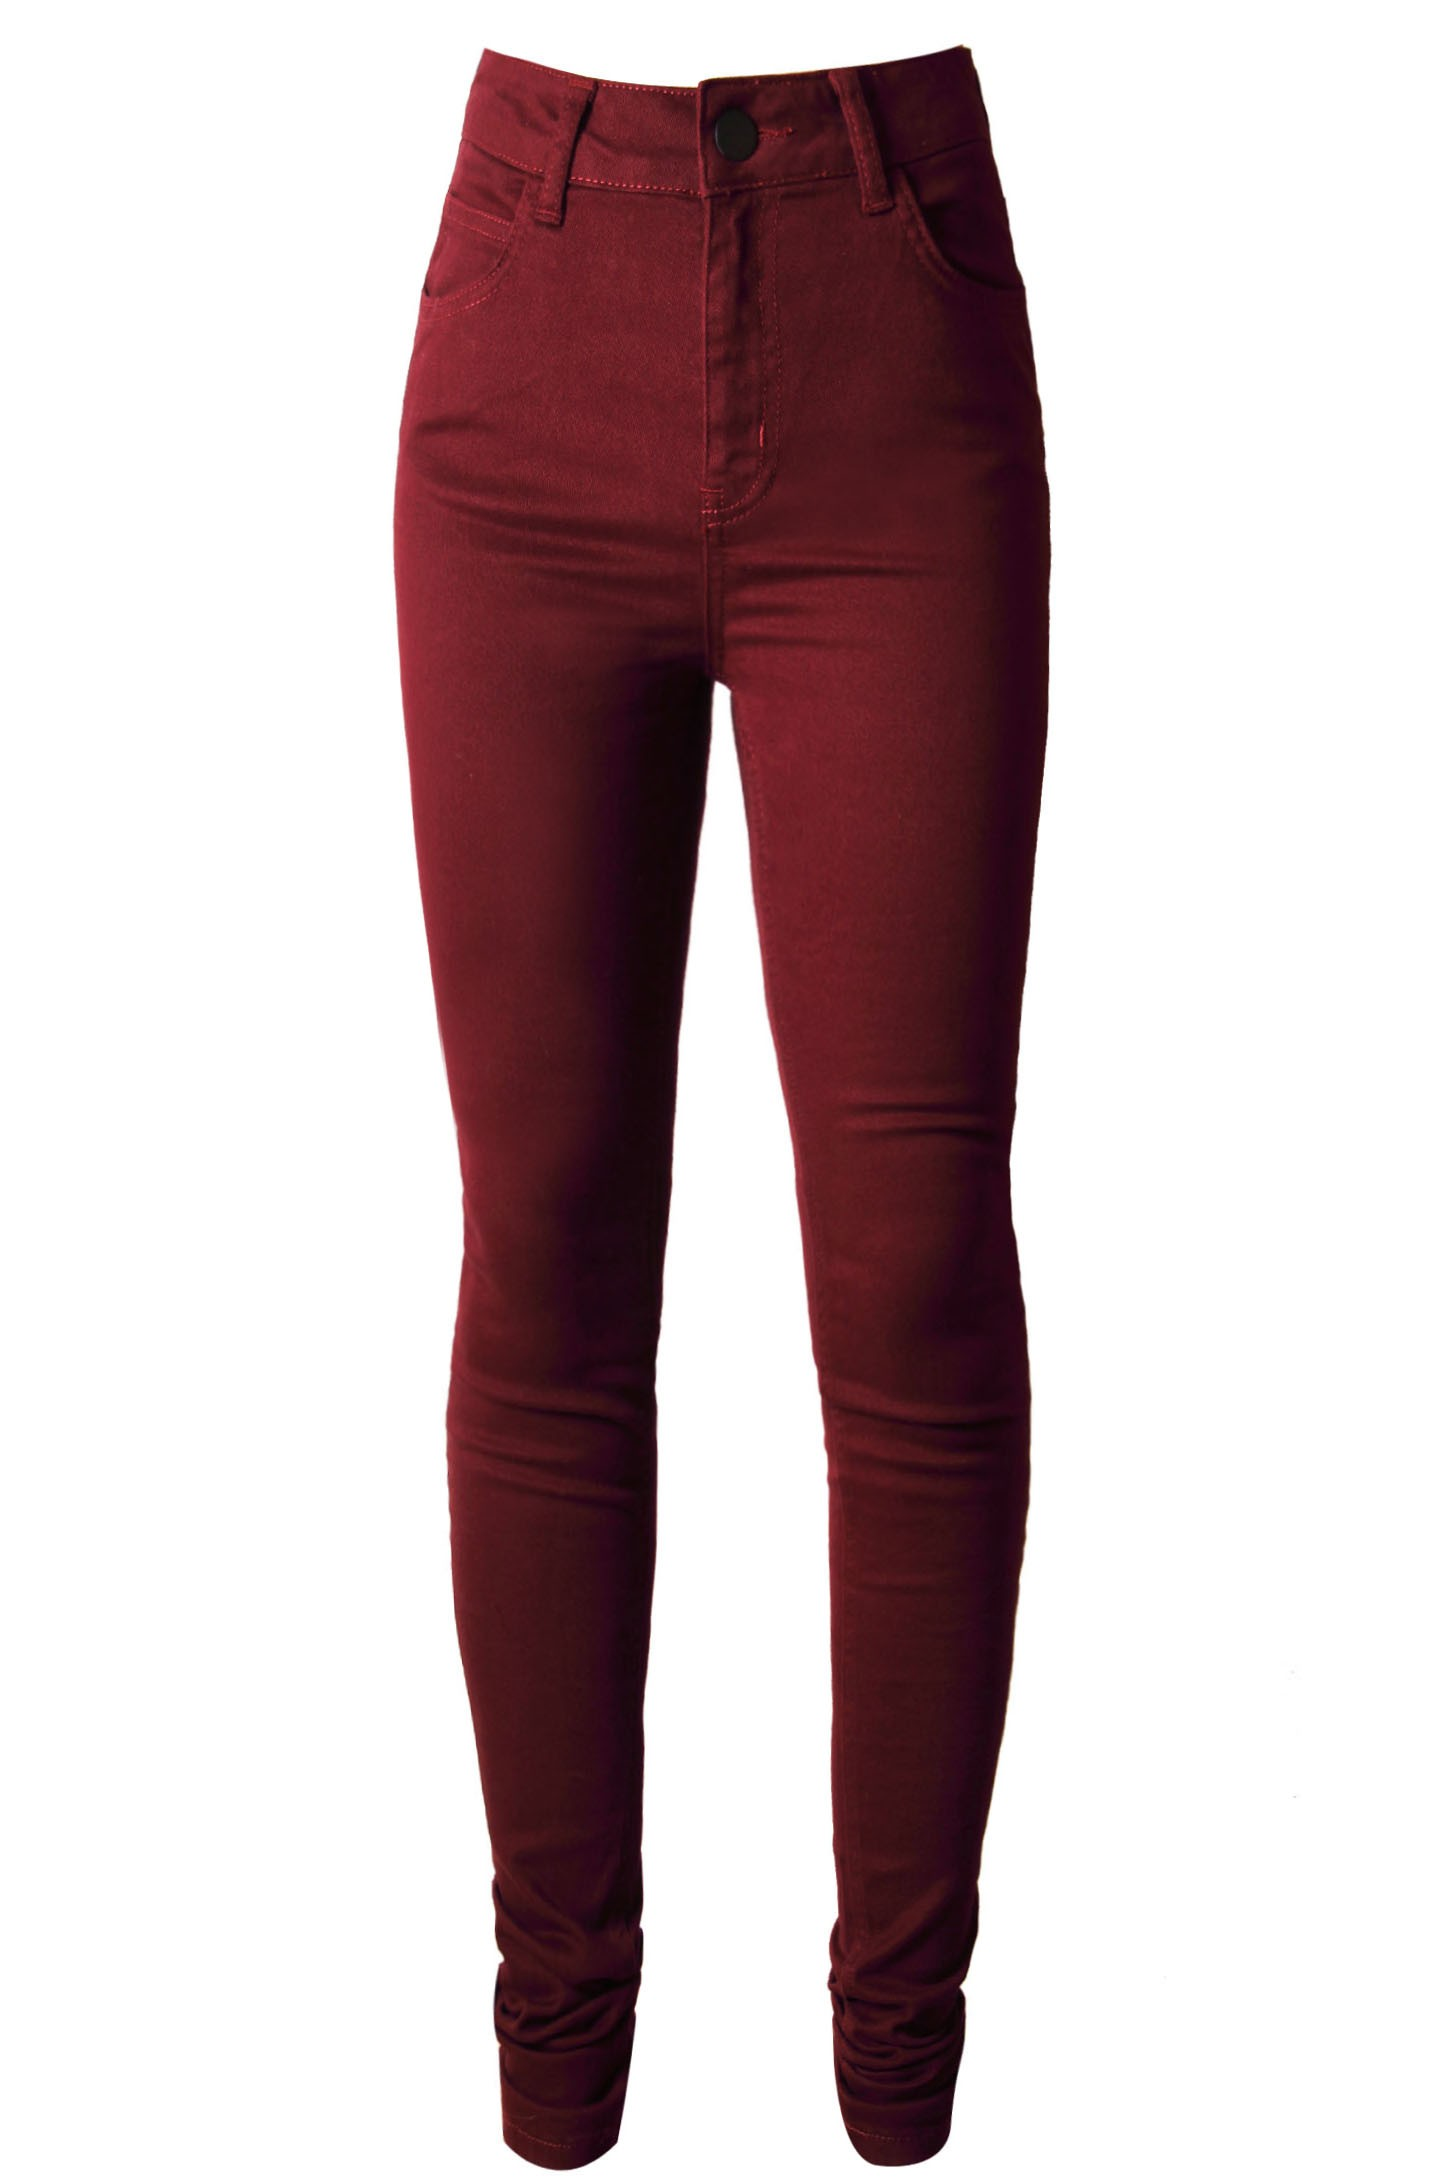 Burgundy high waisted skinny jeans